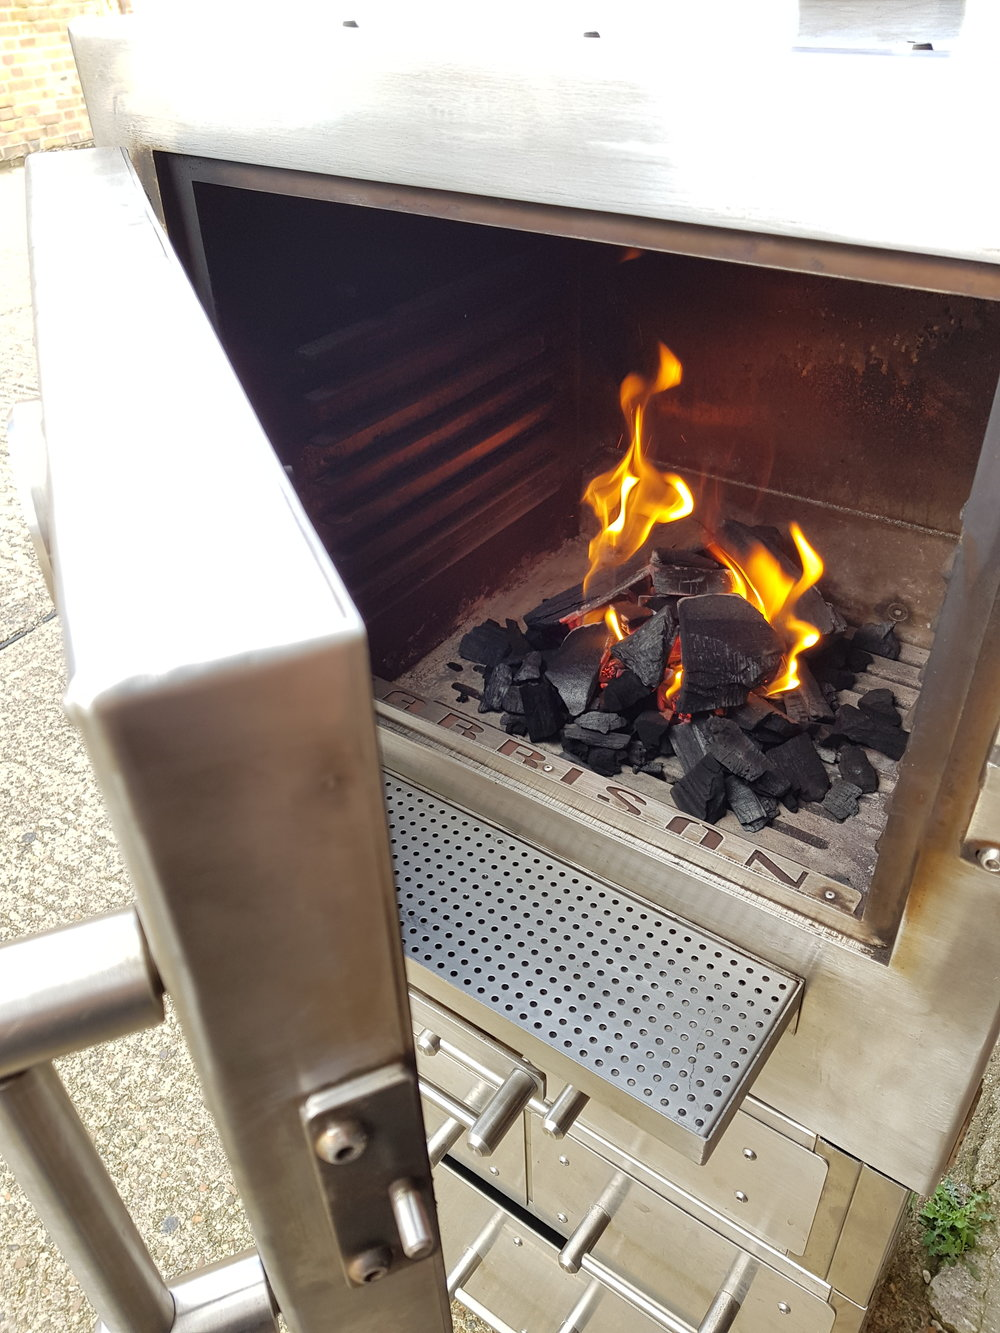 The 6mm stainless steel walls of a Harrison Charcoal oven create an even, radiant heat.